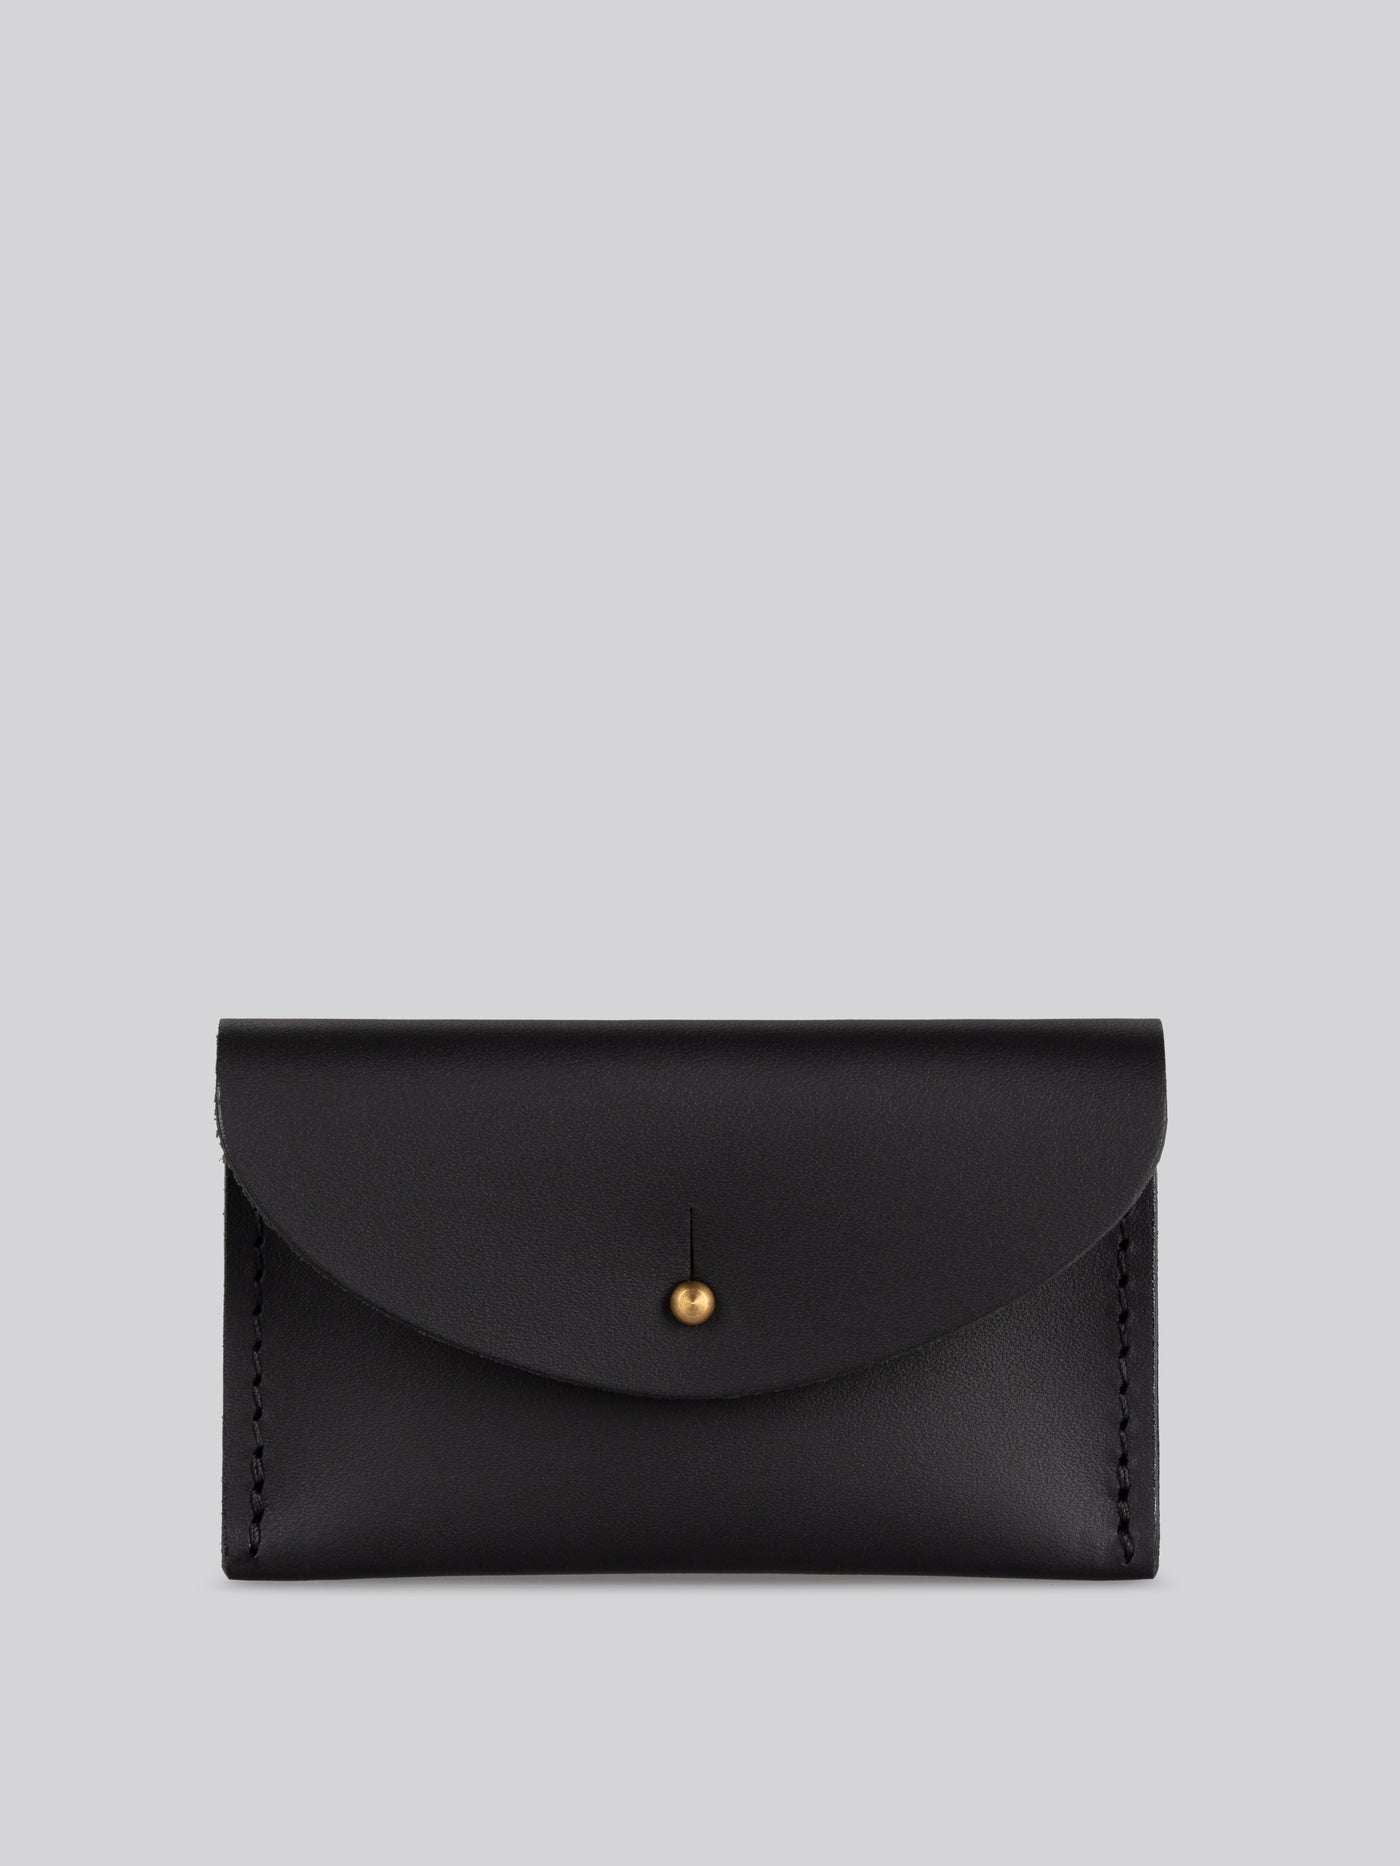 Coin purse - Black}